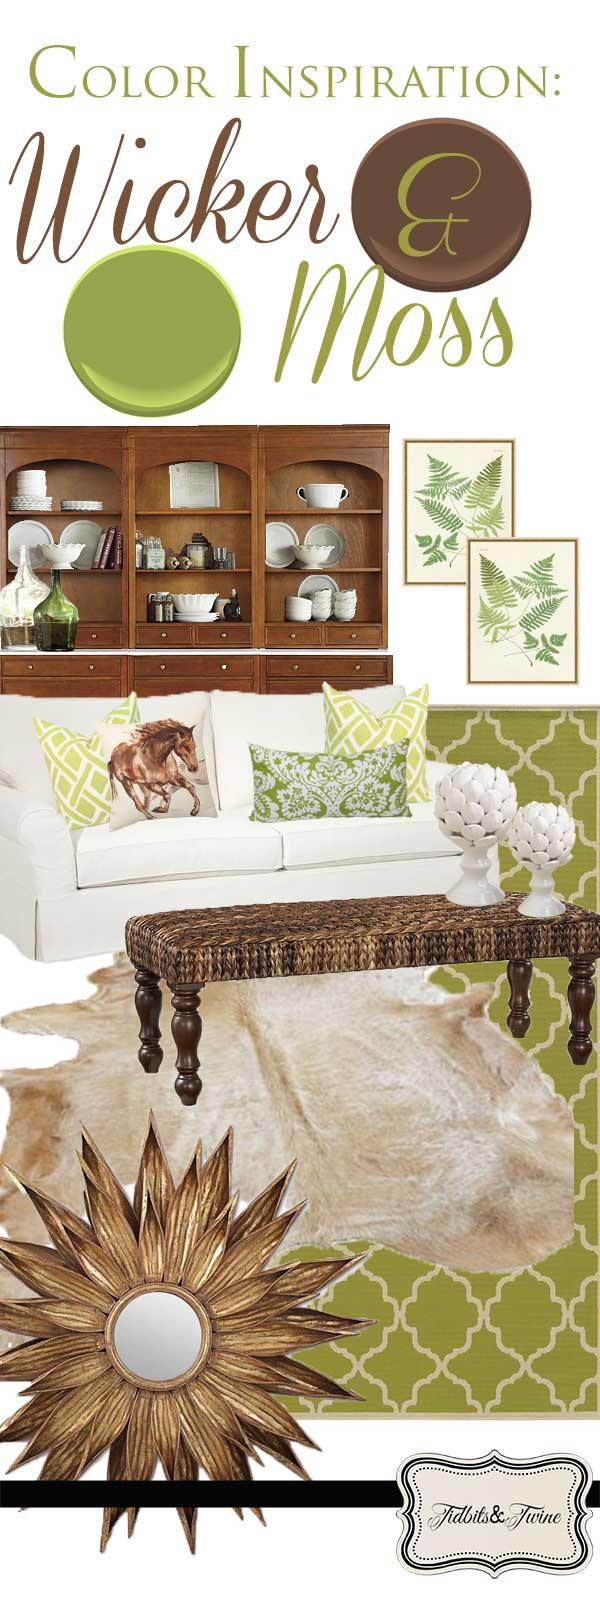 TIDBITS&TWINE: Color Inspiration Wicker and Moss